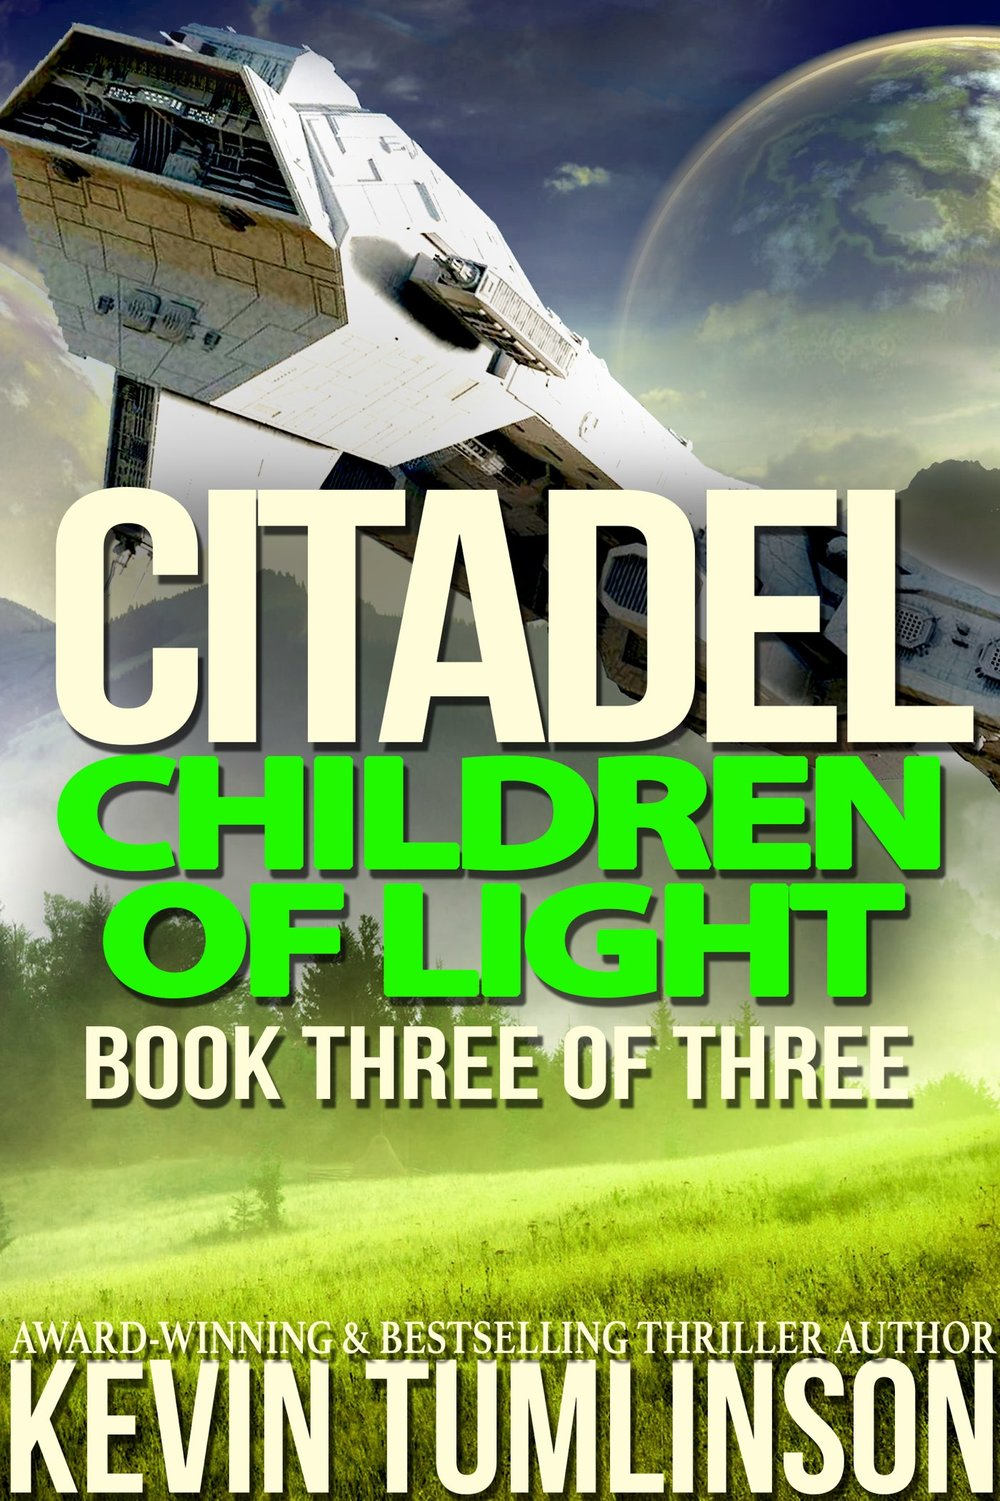 Children of Light - CITADEL: BOOK THREE